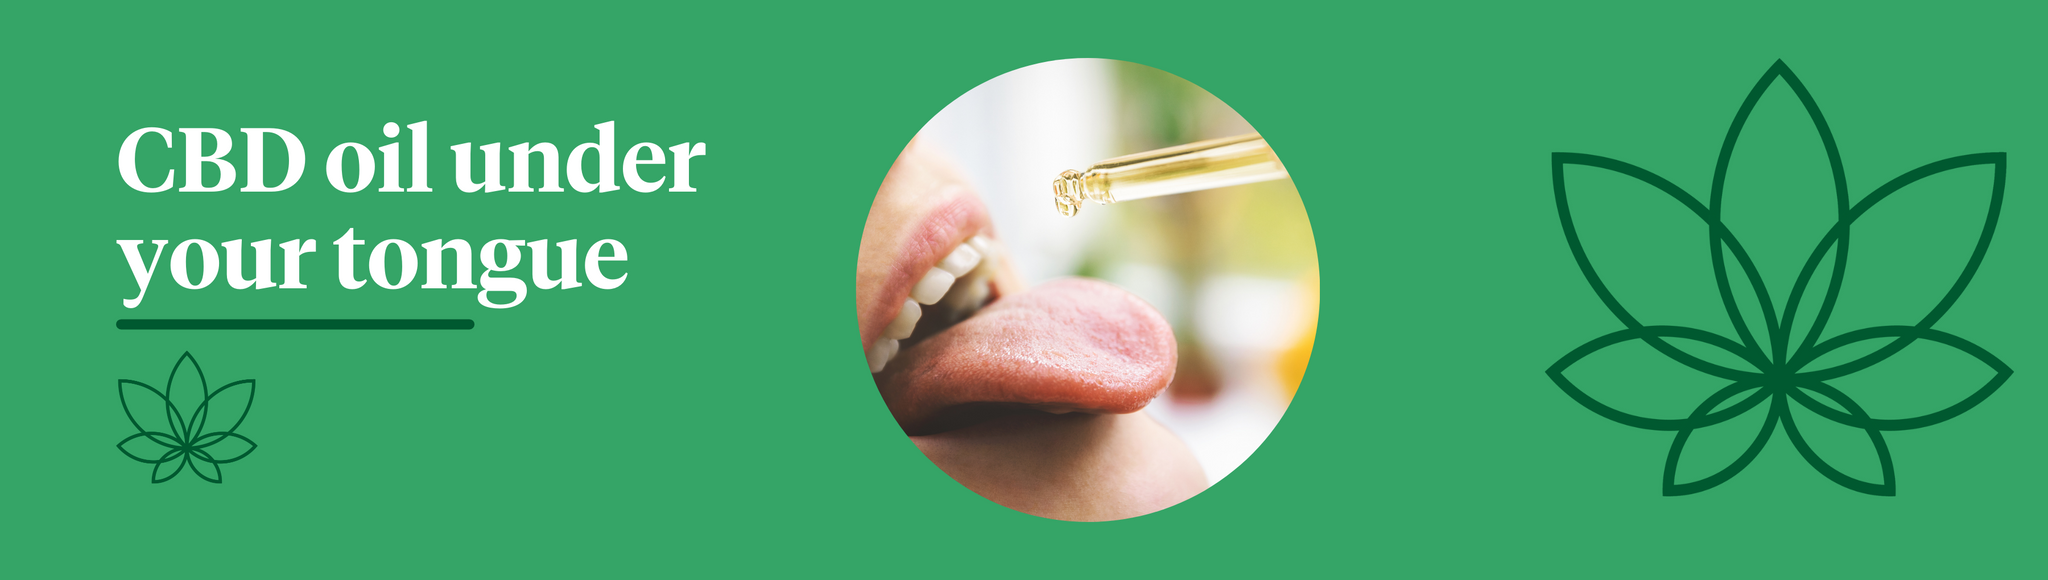 A green background with the Supreme CBD logo to the right of the image with a woman placing CBD oil under her tongue to show the sublingual method of taking CBD.